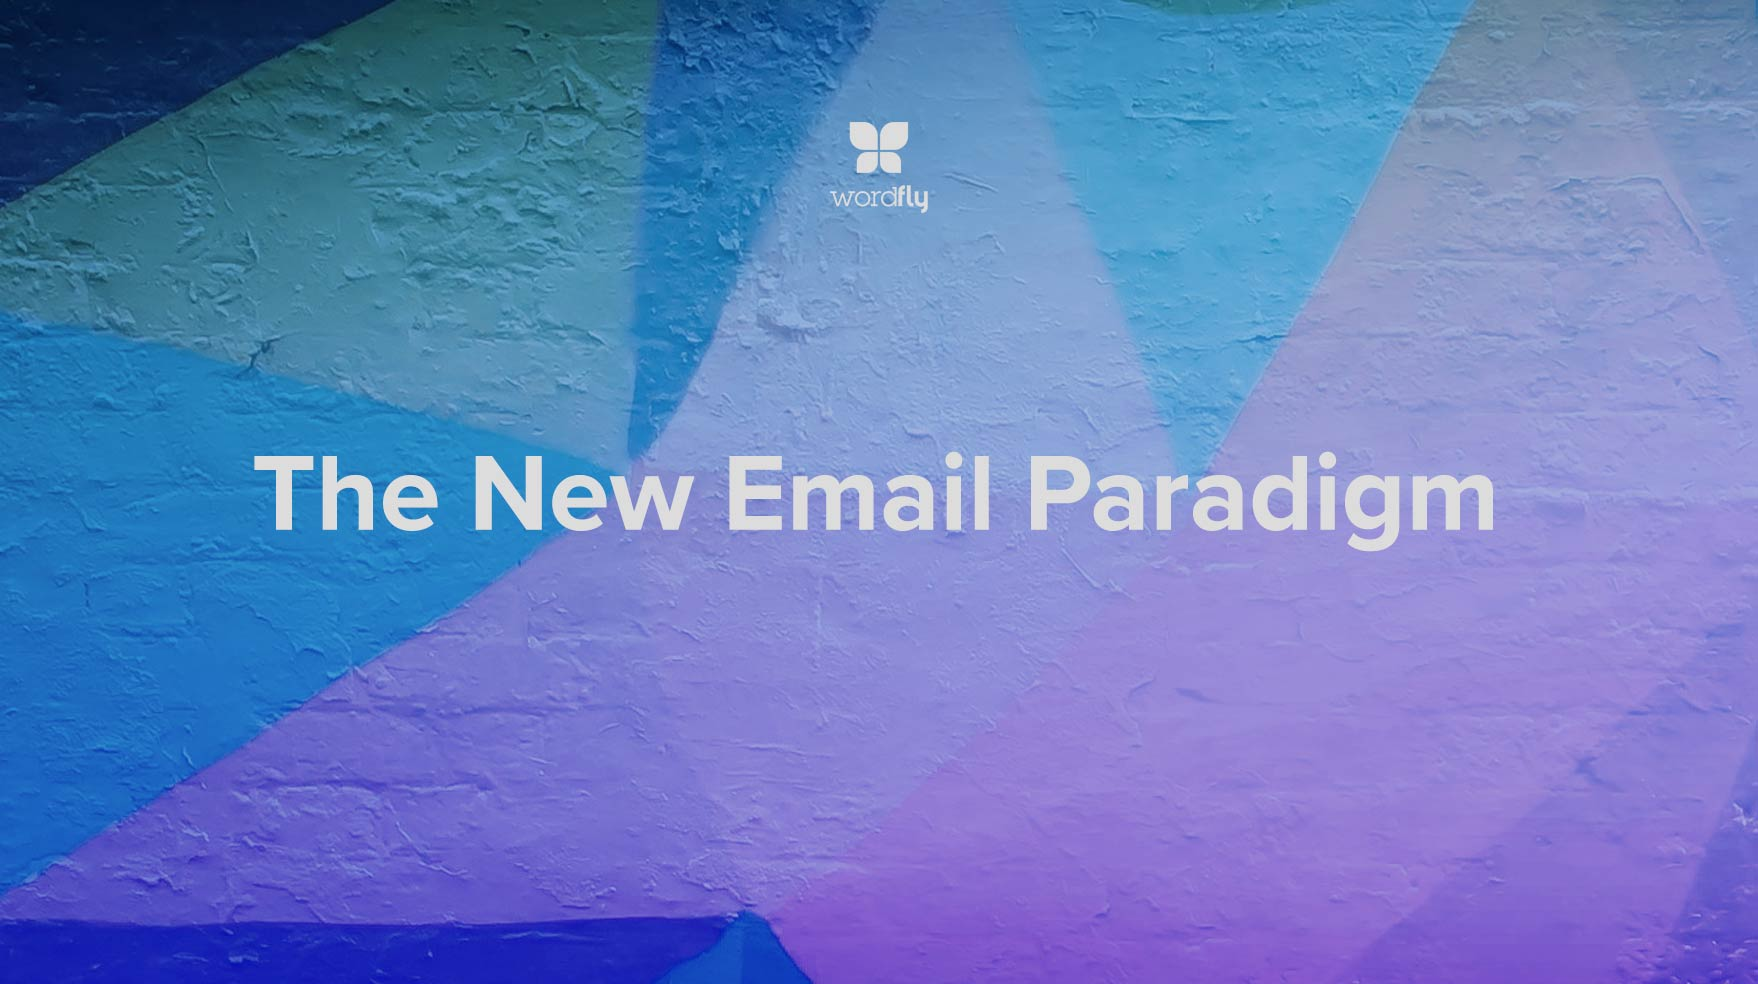 The New Email Paradigm